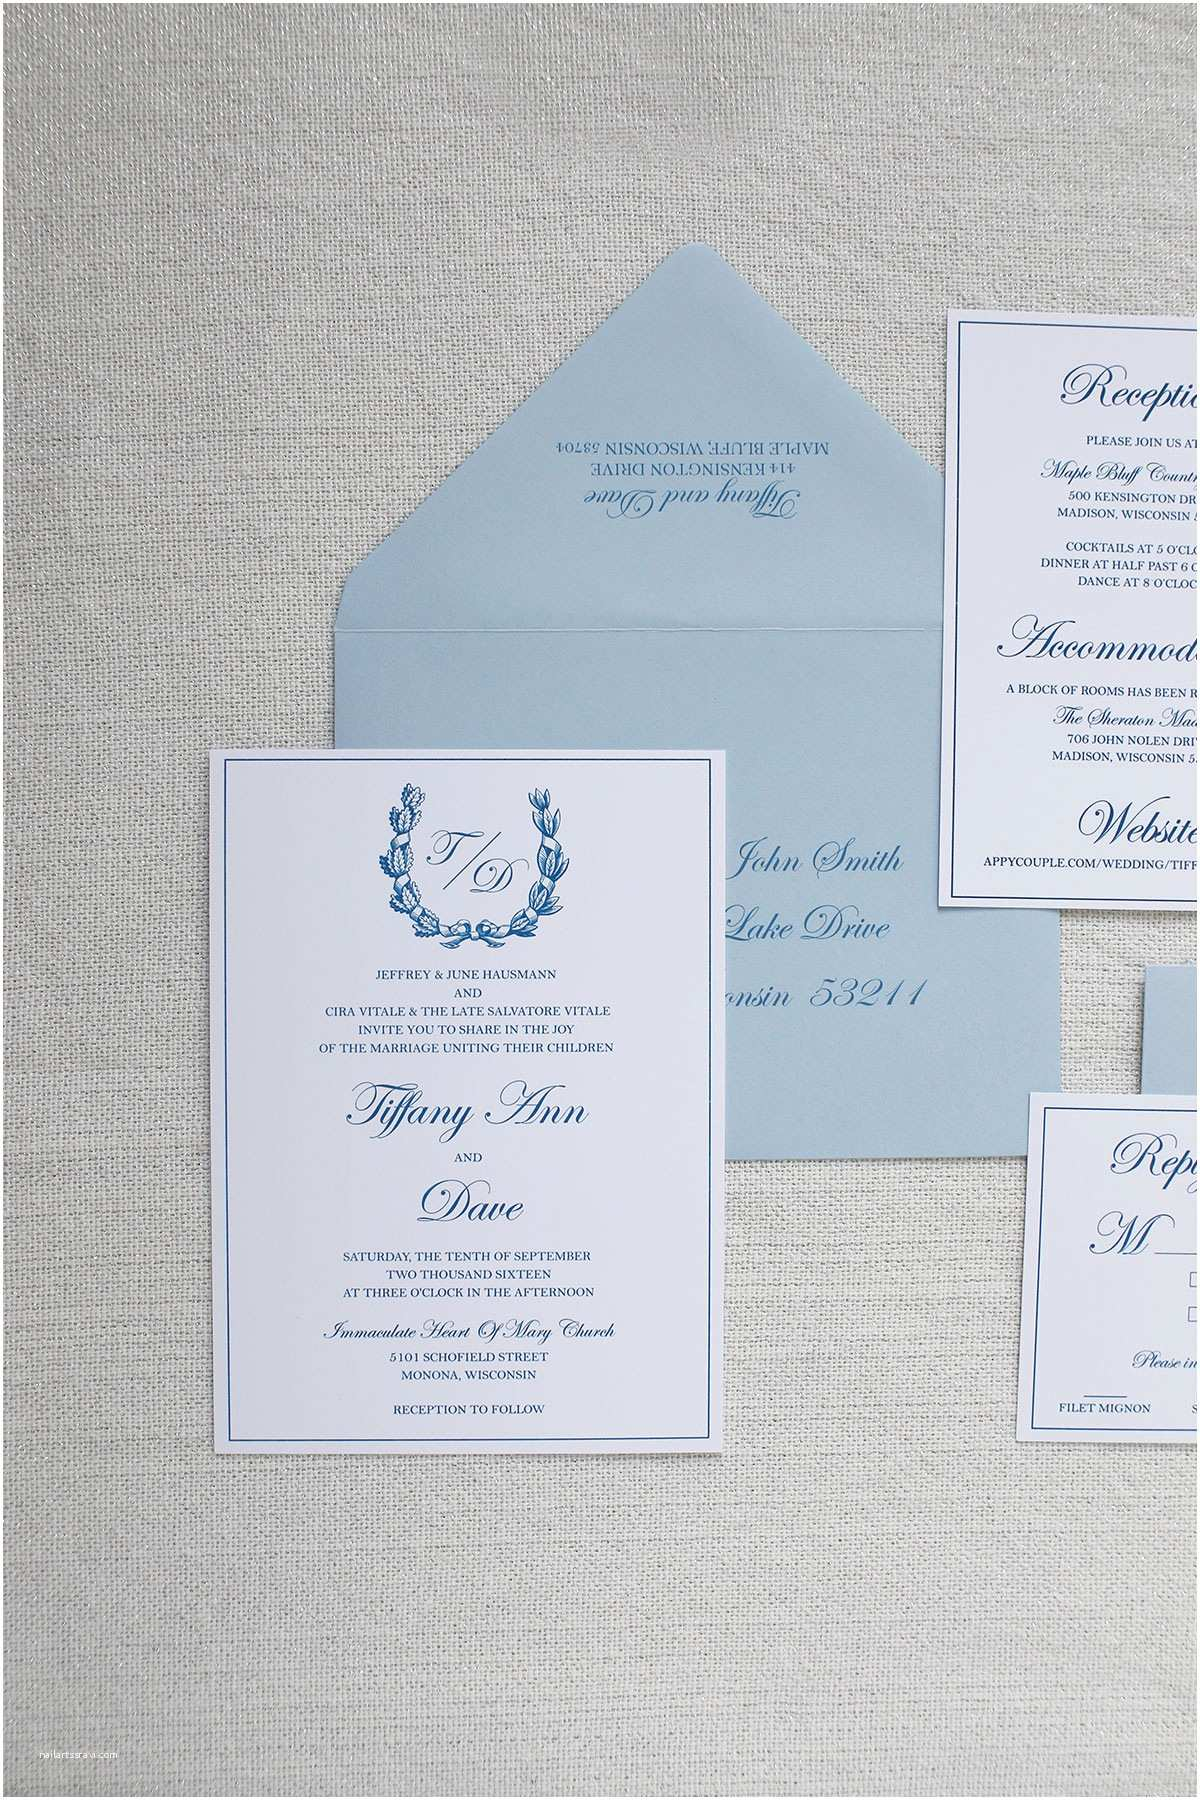 Madison Wi Wedding Invitations formal Country Club Wedding Invitation Madison Wisconsin